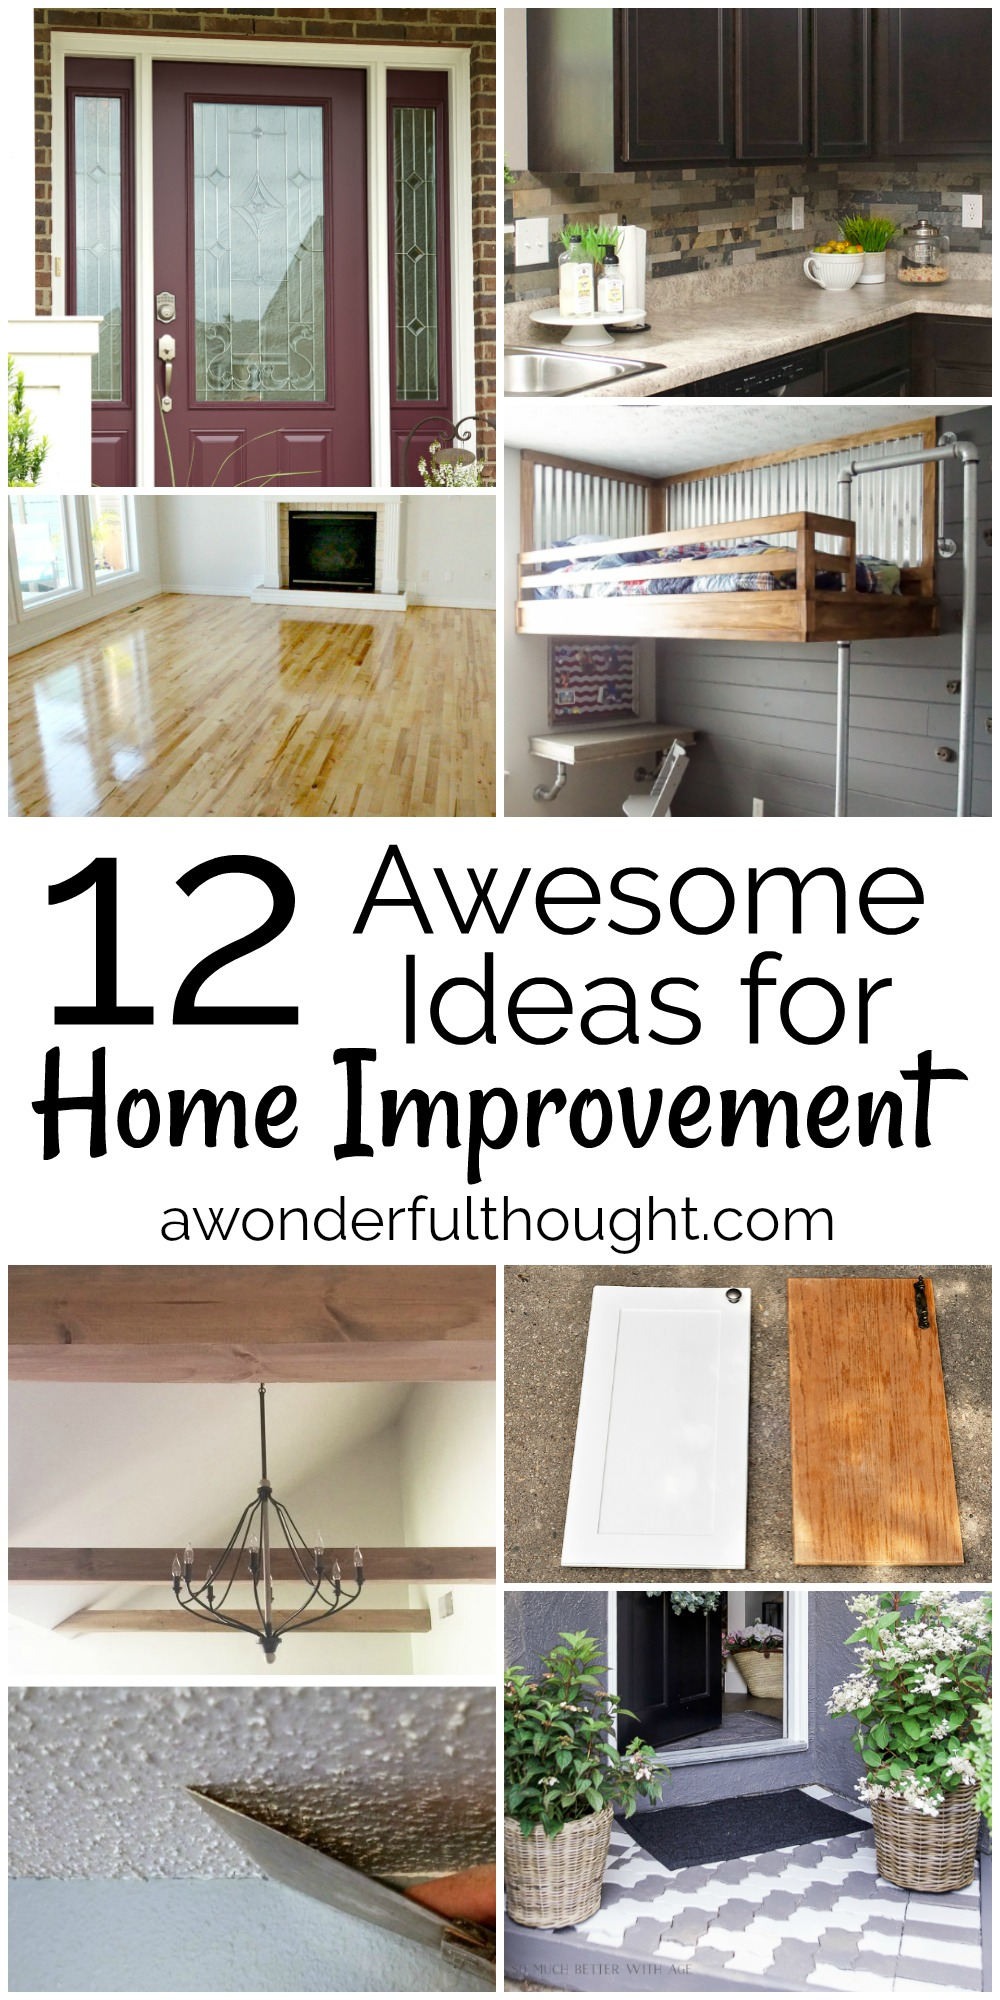 12 awesome home improvement ideas mm 163 a wonderful Home improvement ideas